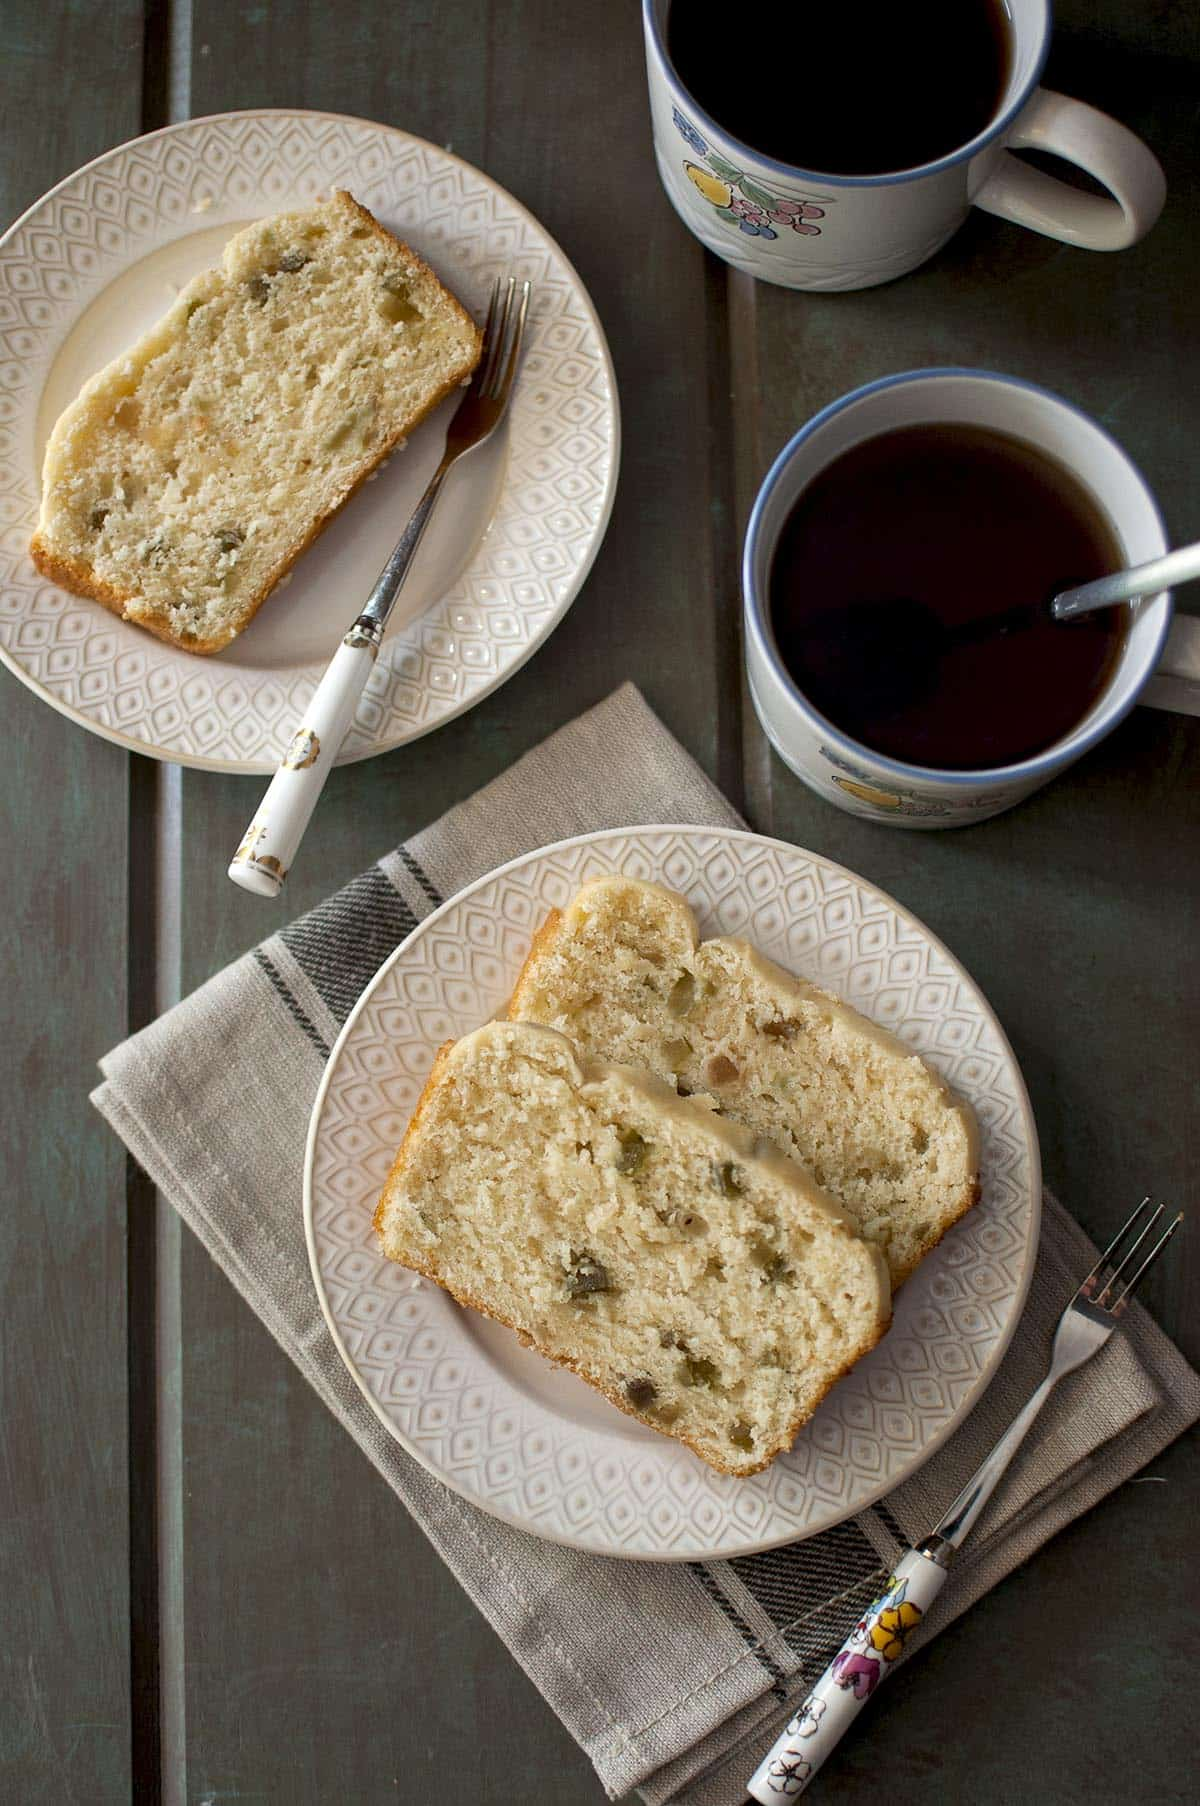 Two slices of Ice Cream bread on a white plate with mugs of tea in the background